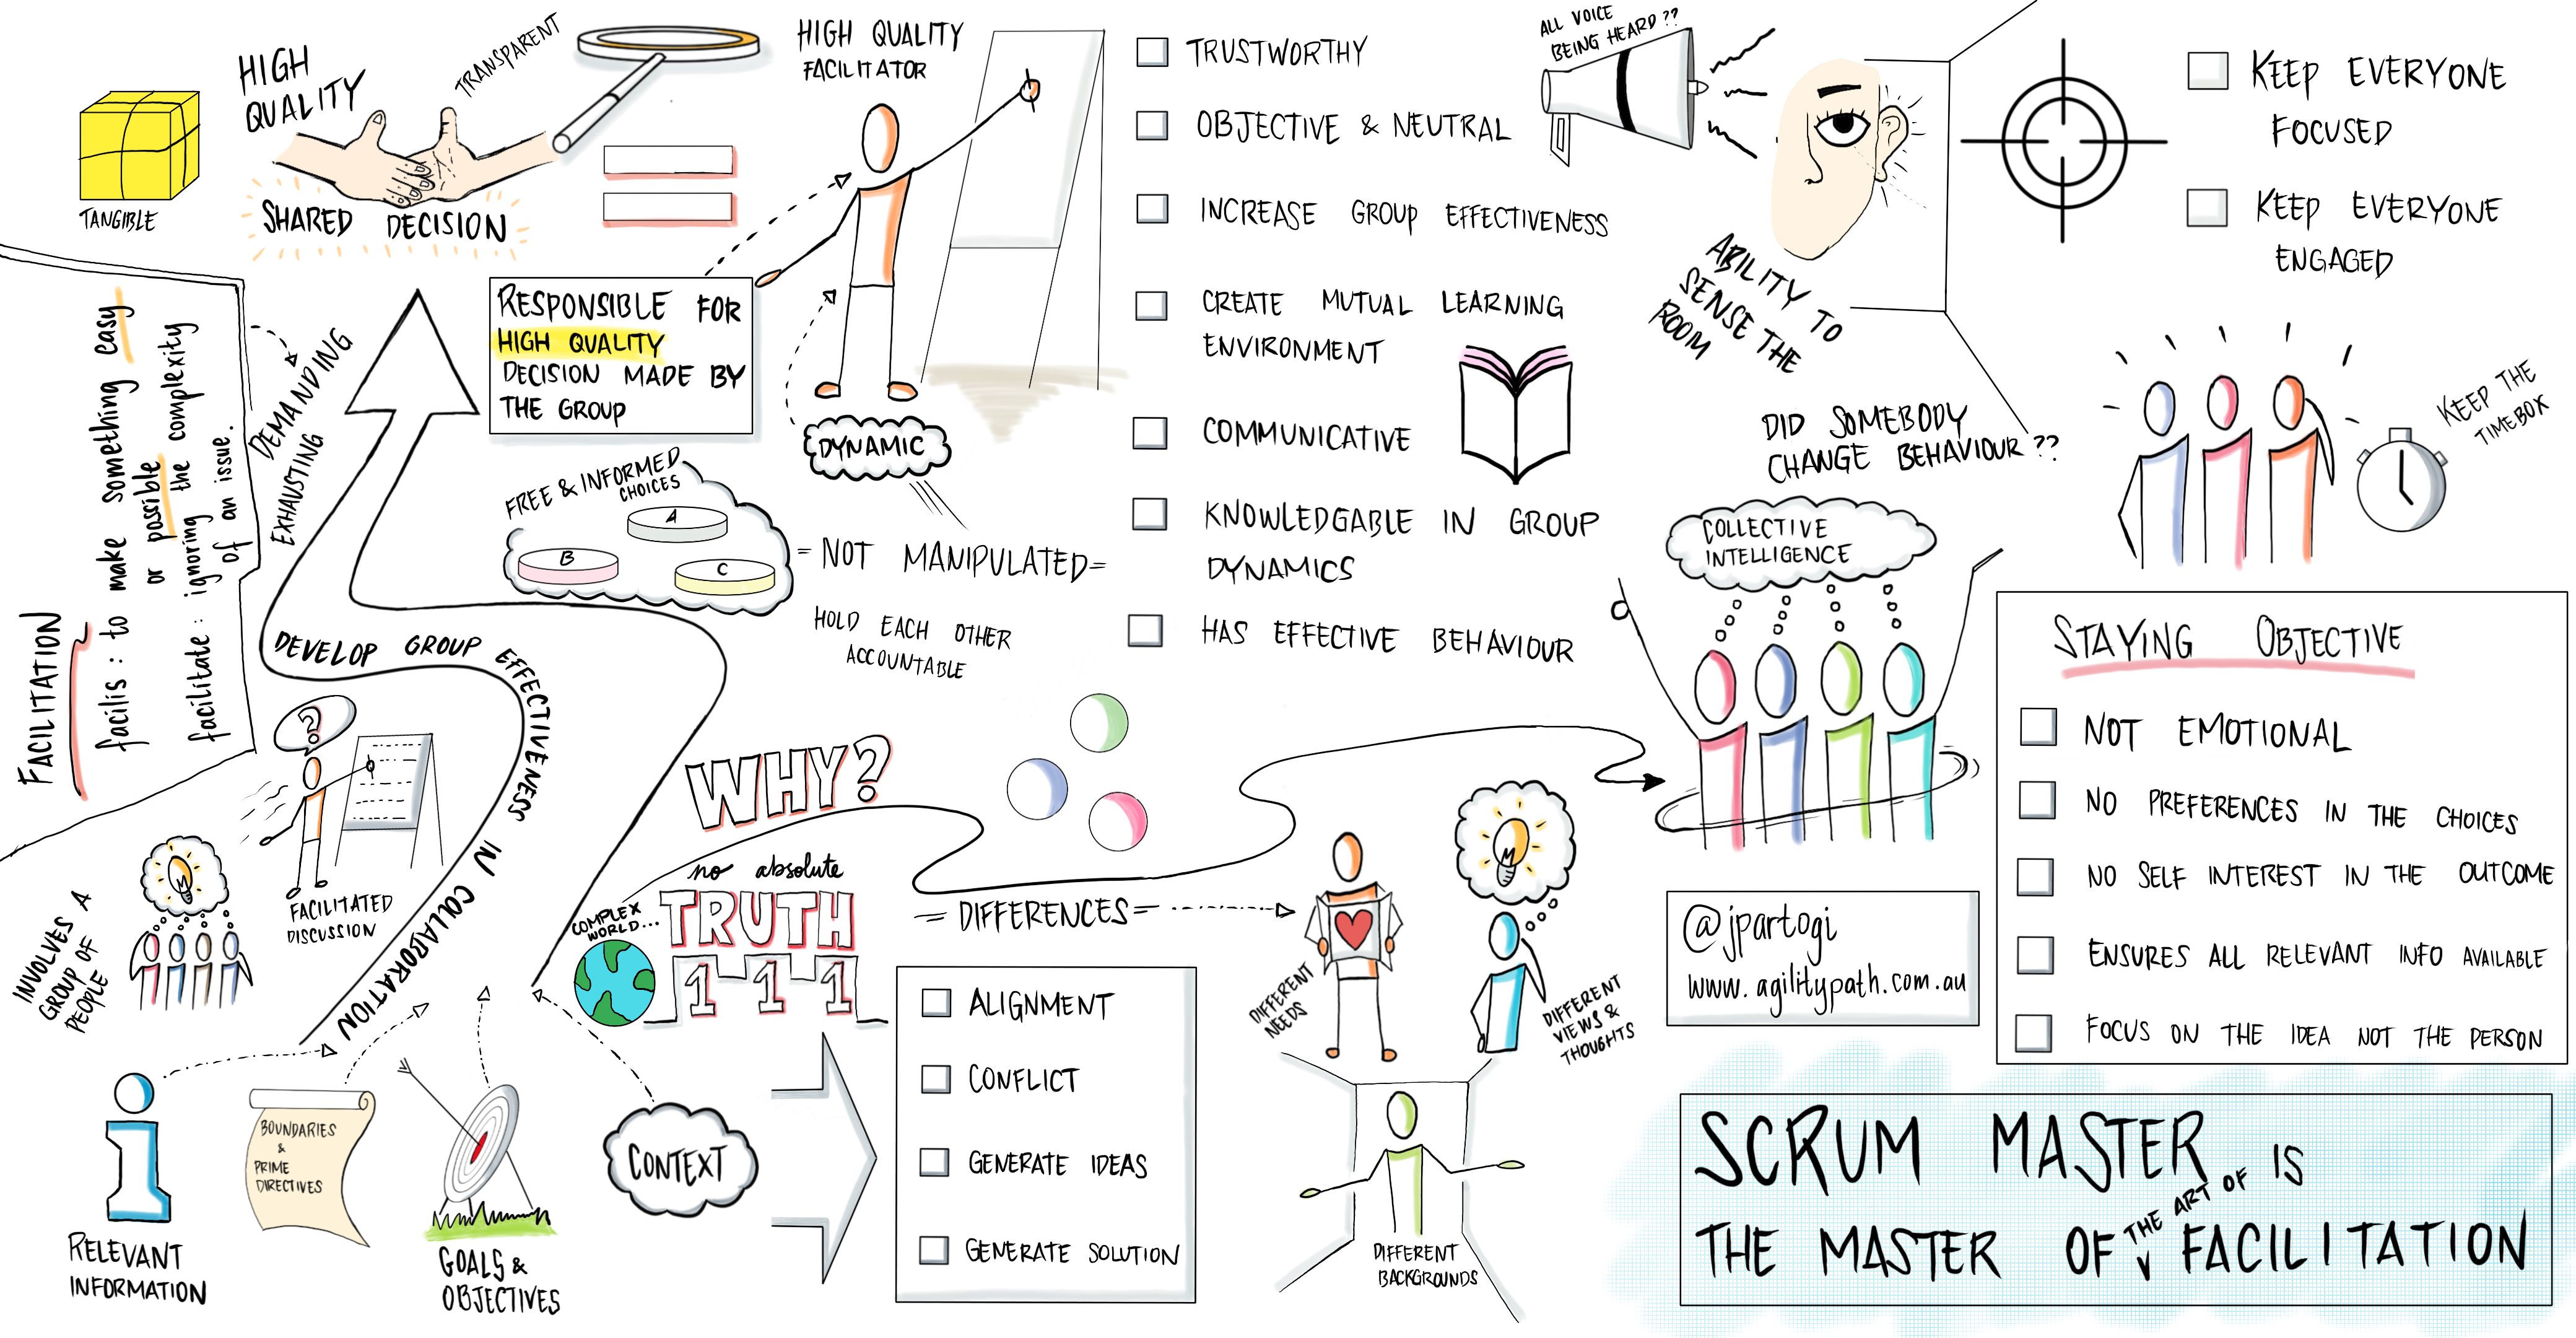 Scrum Master: the master of the art of facilitation